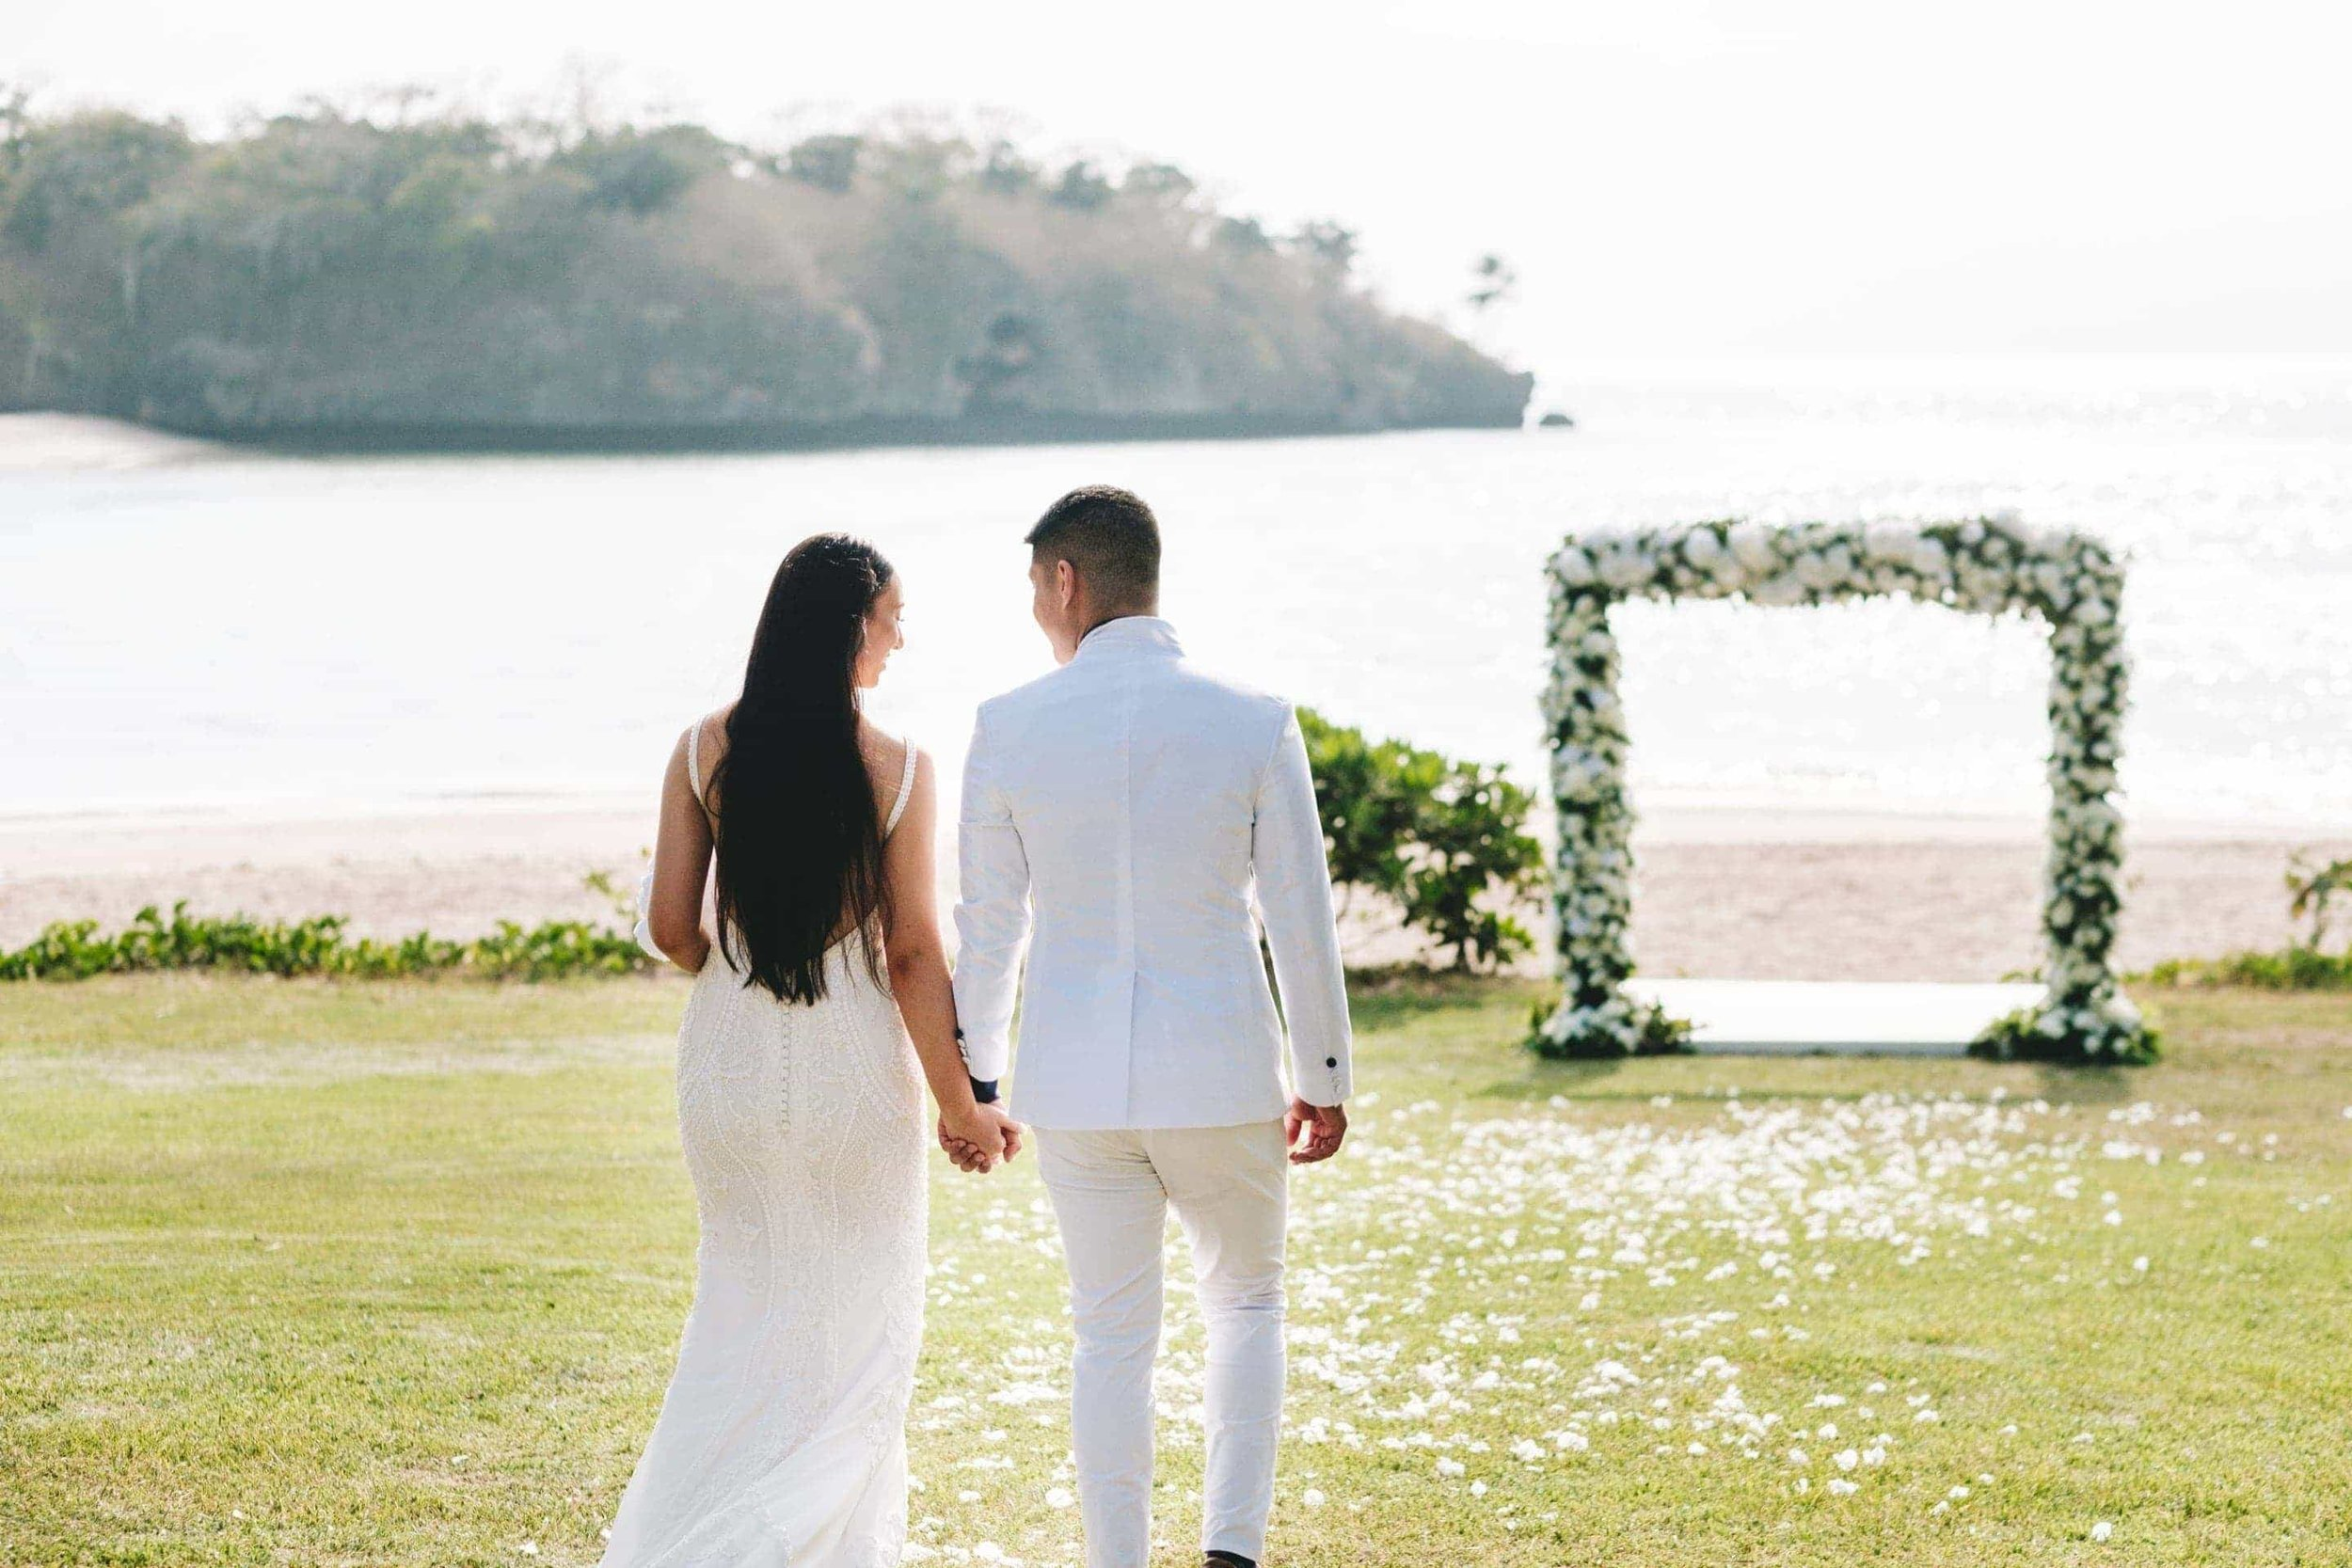 the bride and groom walking down the aisle together with Natadaloa beach and Navo Island in the background